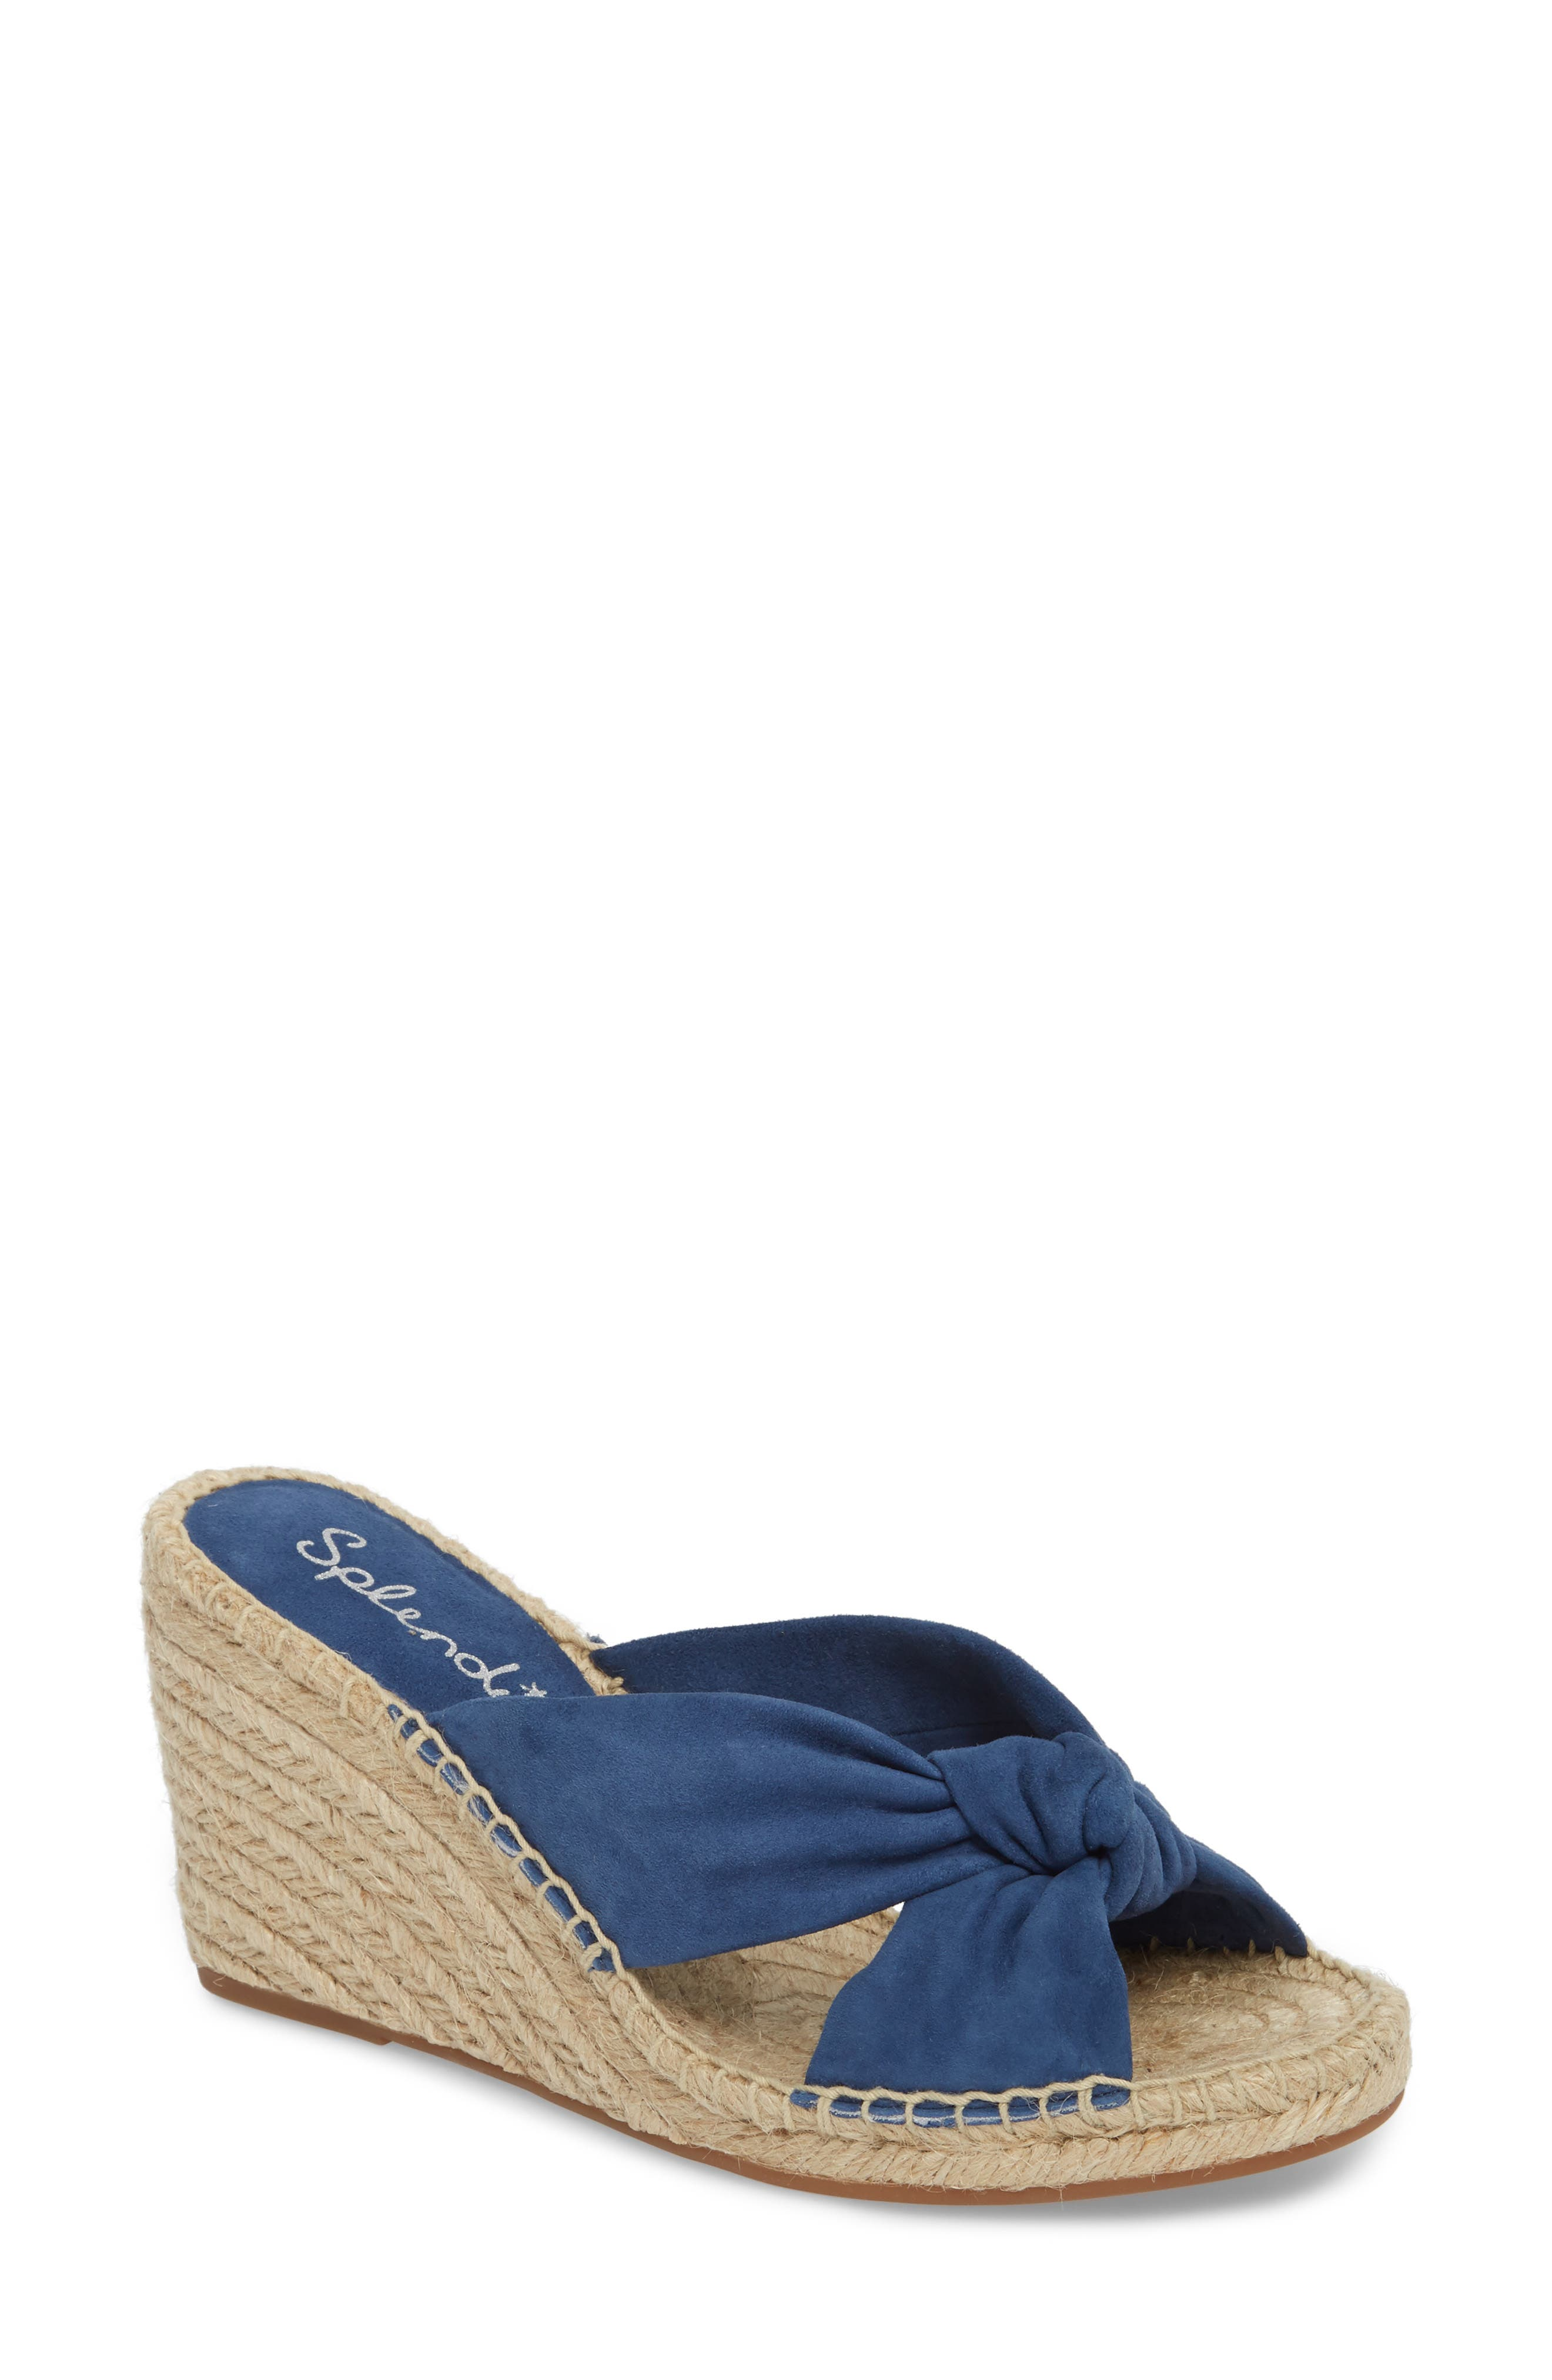 Bautista Knotted Wedge Sandal,                         Main,                         color, DENIM FABRIC